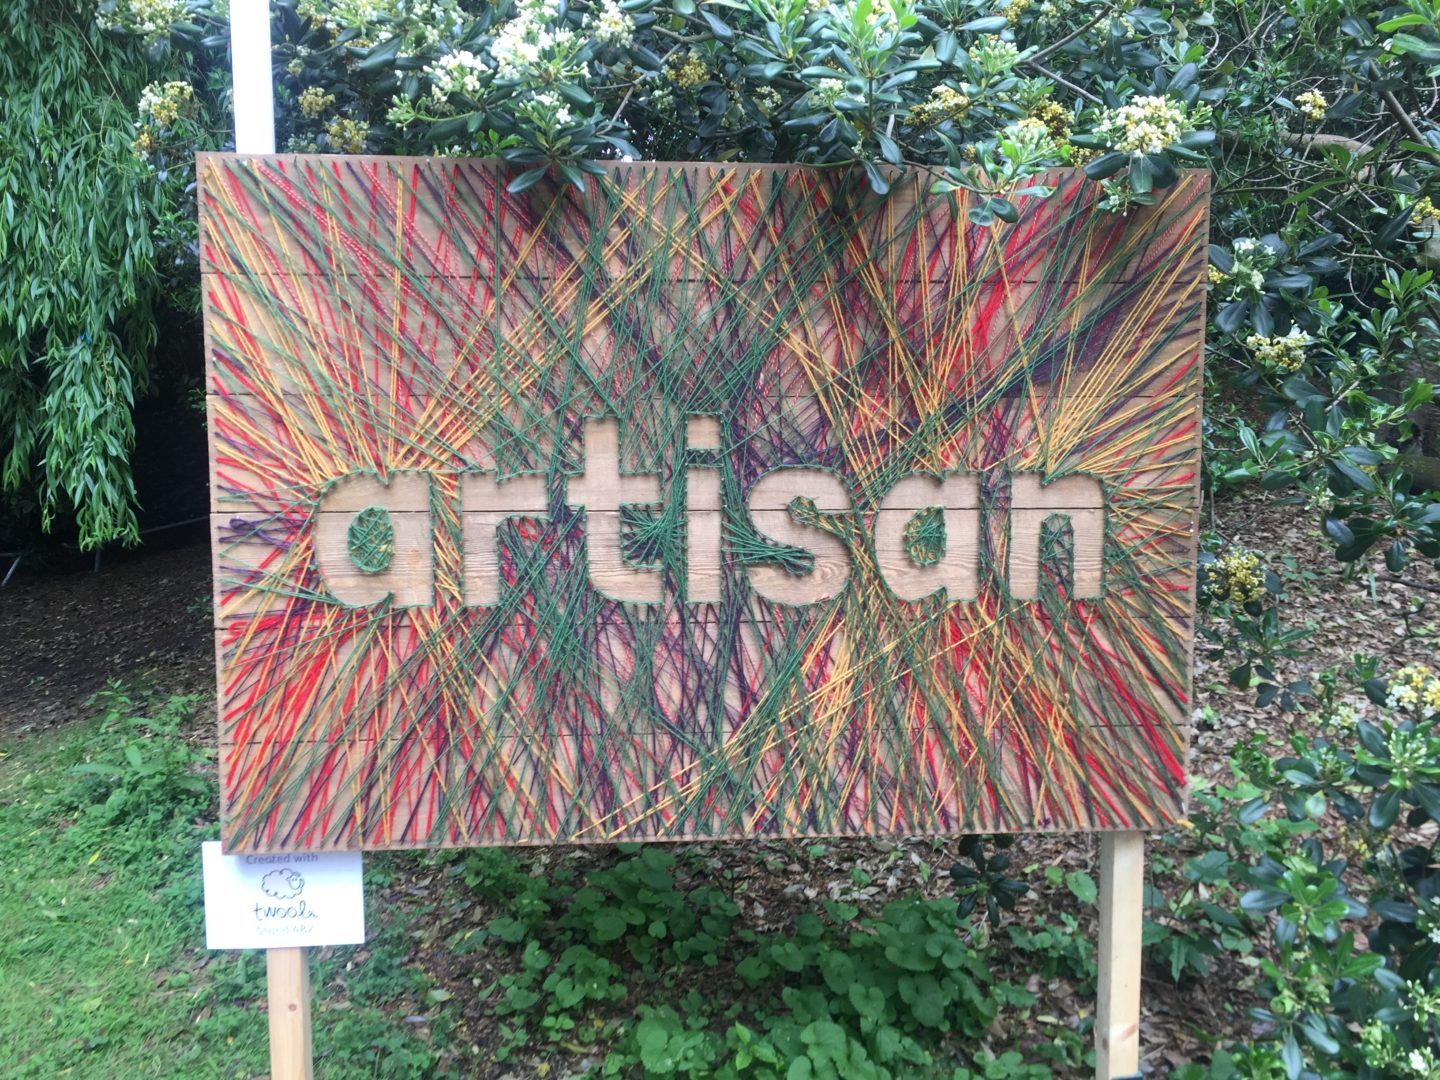 The Artisan Garden sign made from wool and nails.